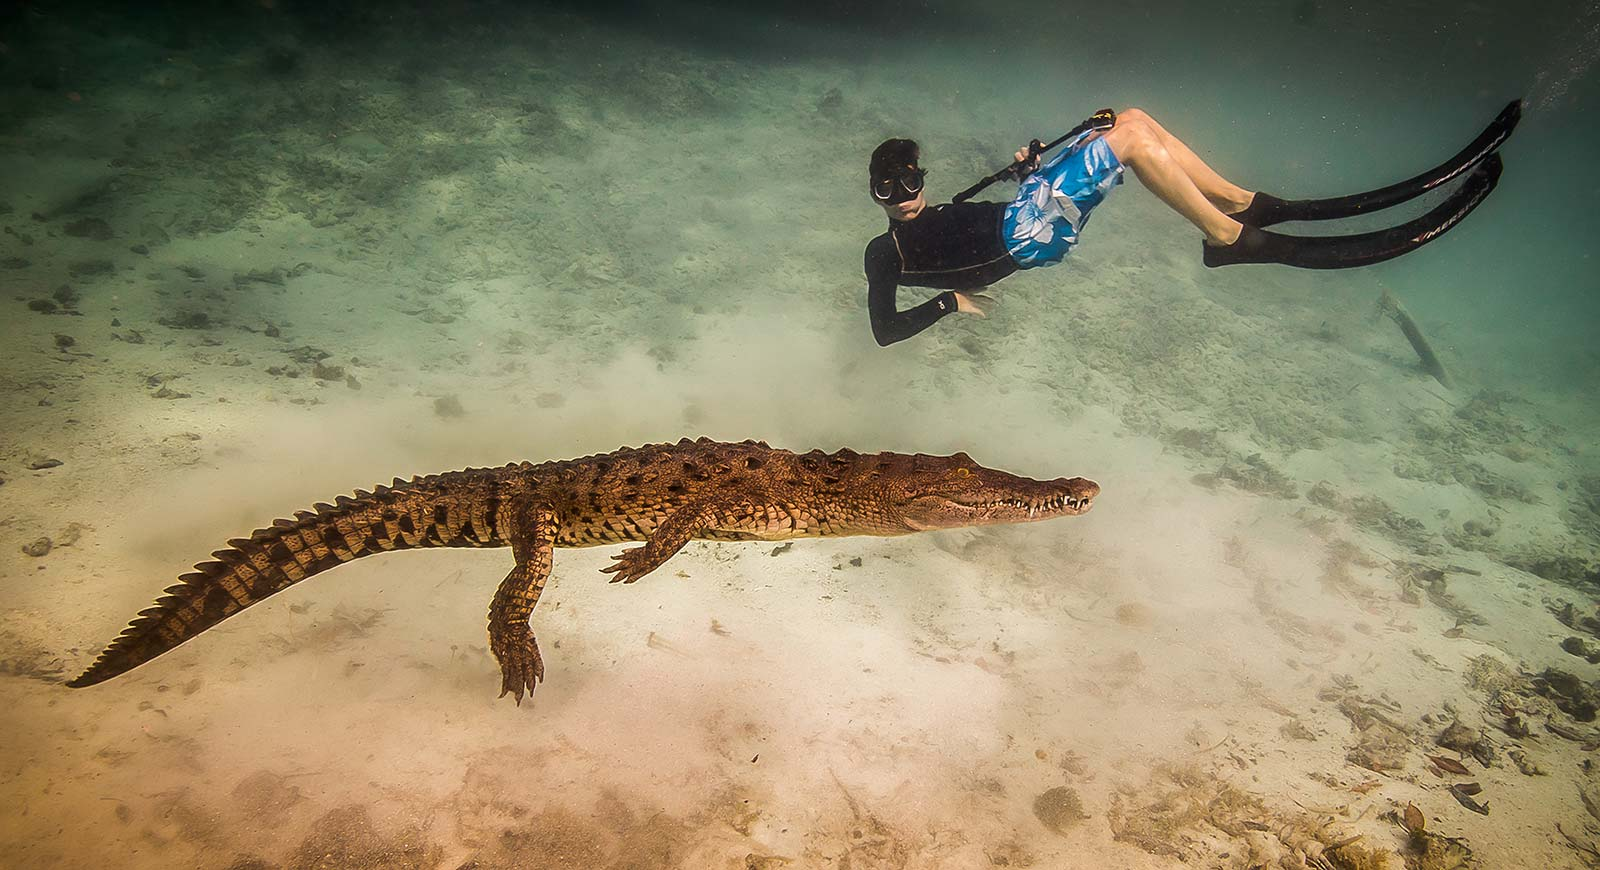 Swim with crocodiles